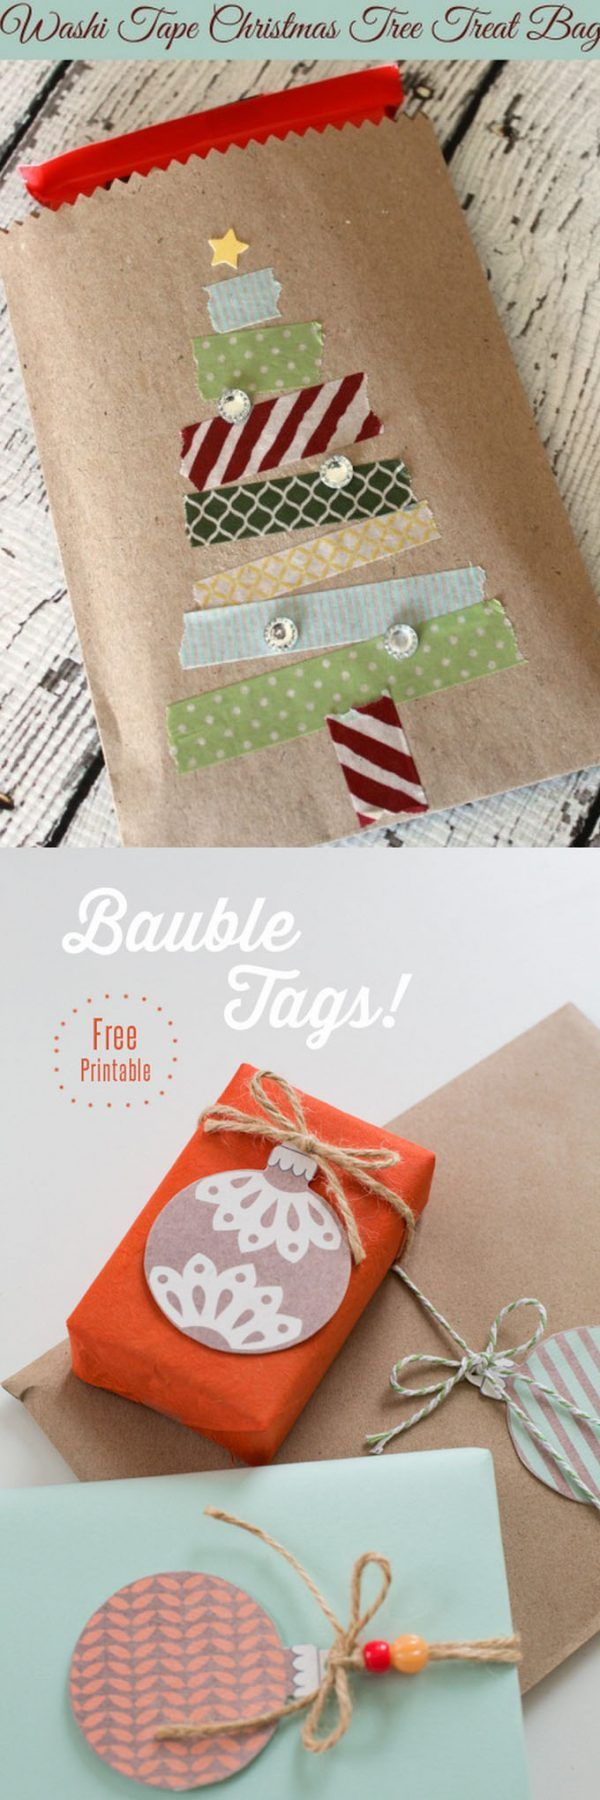 16-gift-wrapping-hacks-apieceofrainbow-7